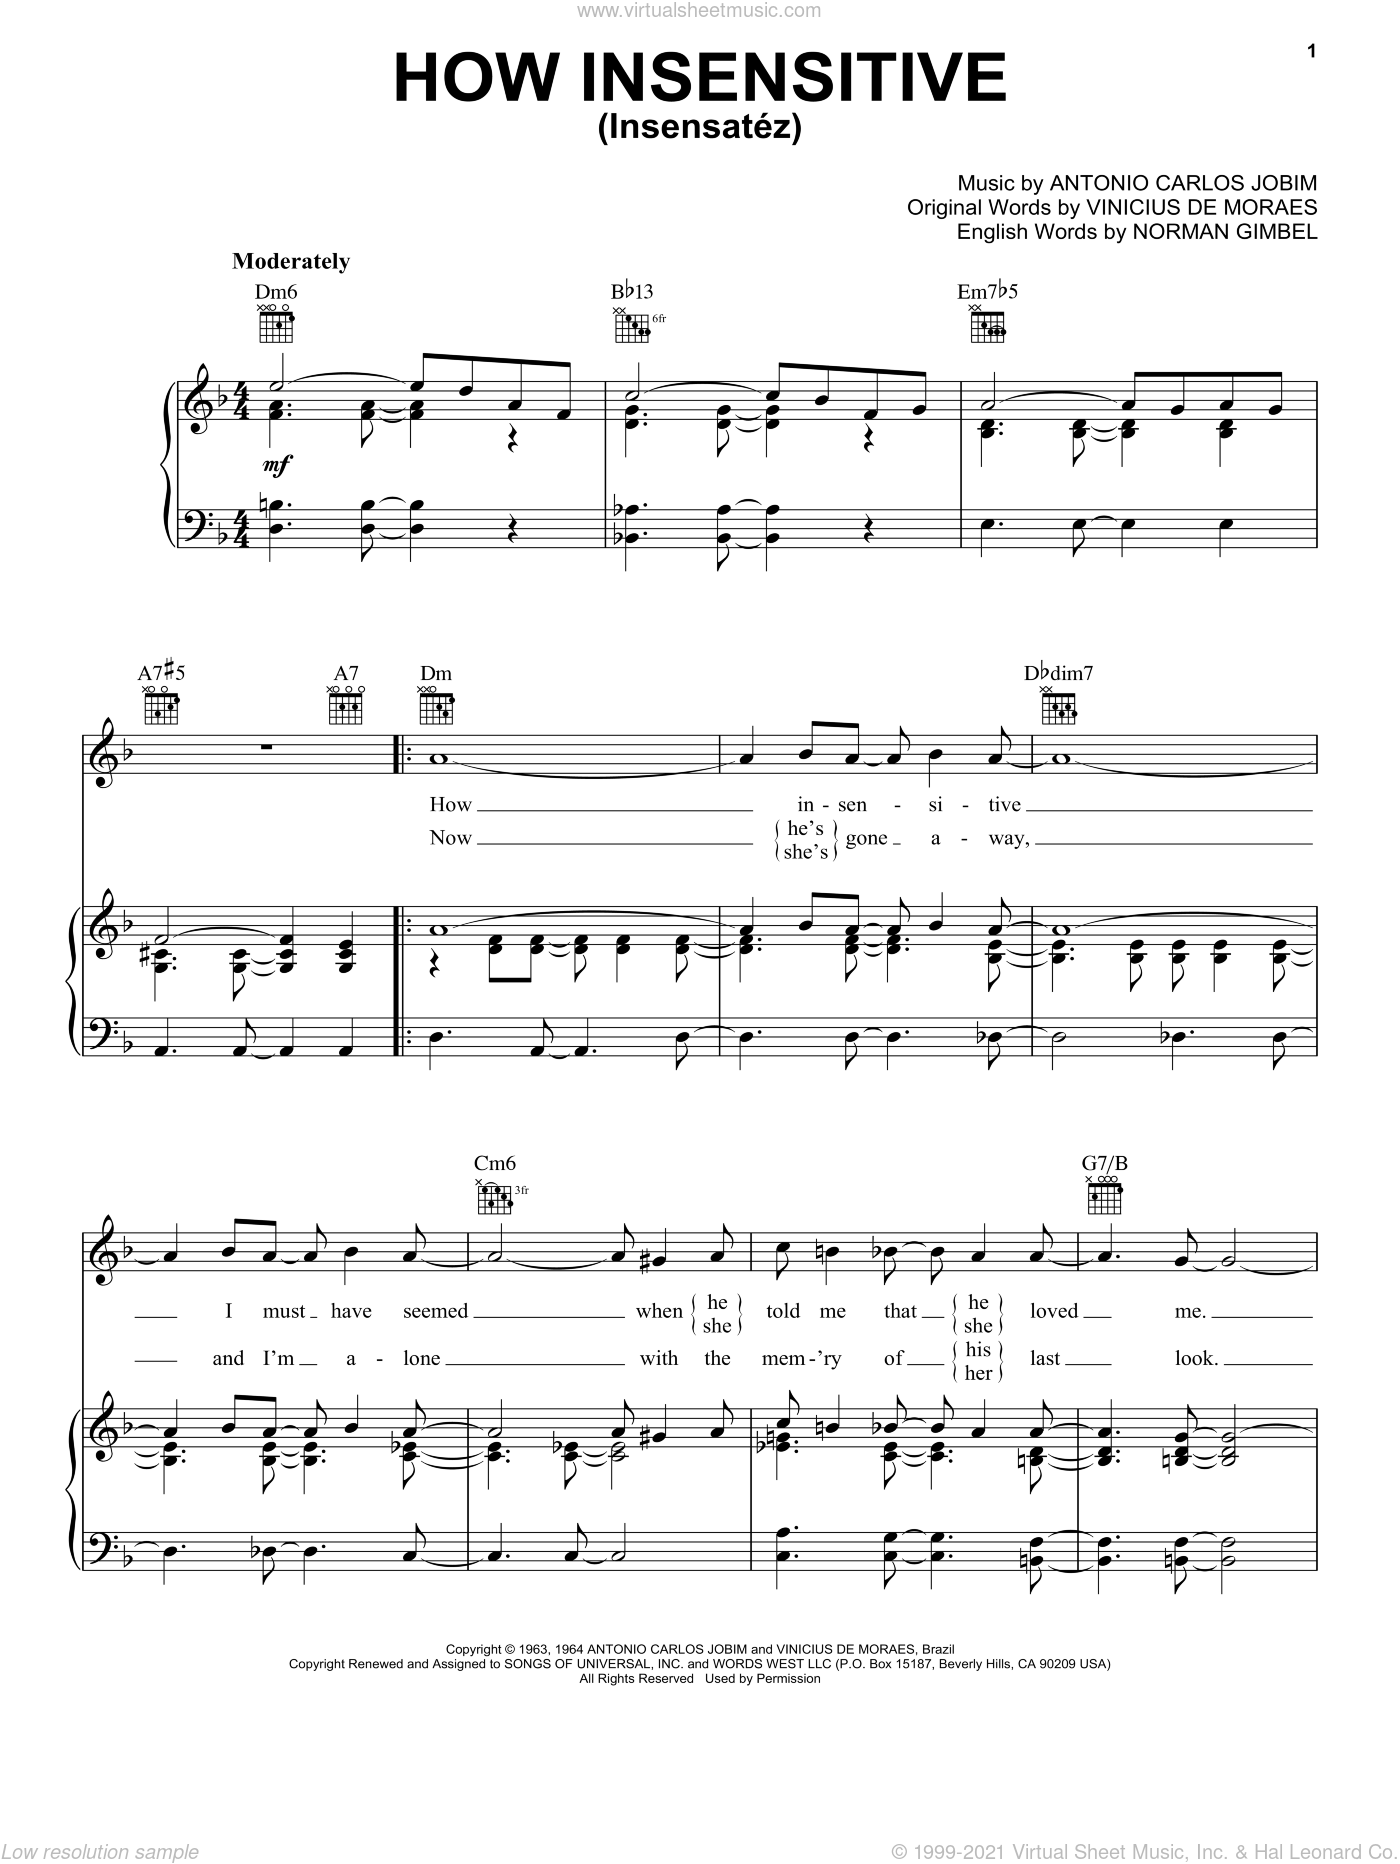 How Insensitive (Insensatez) sheet music for voice, piano or guitar by Vinicius de Moraes